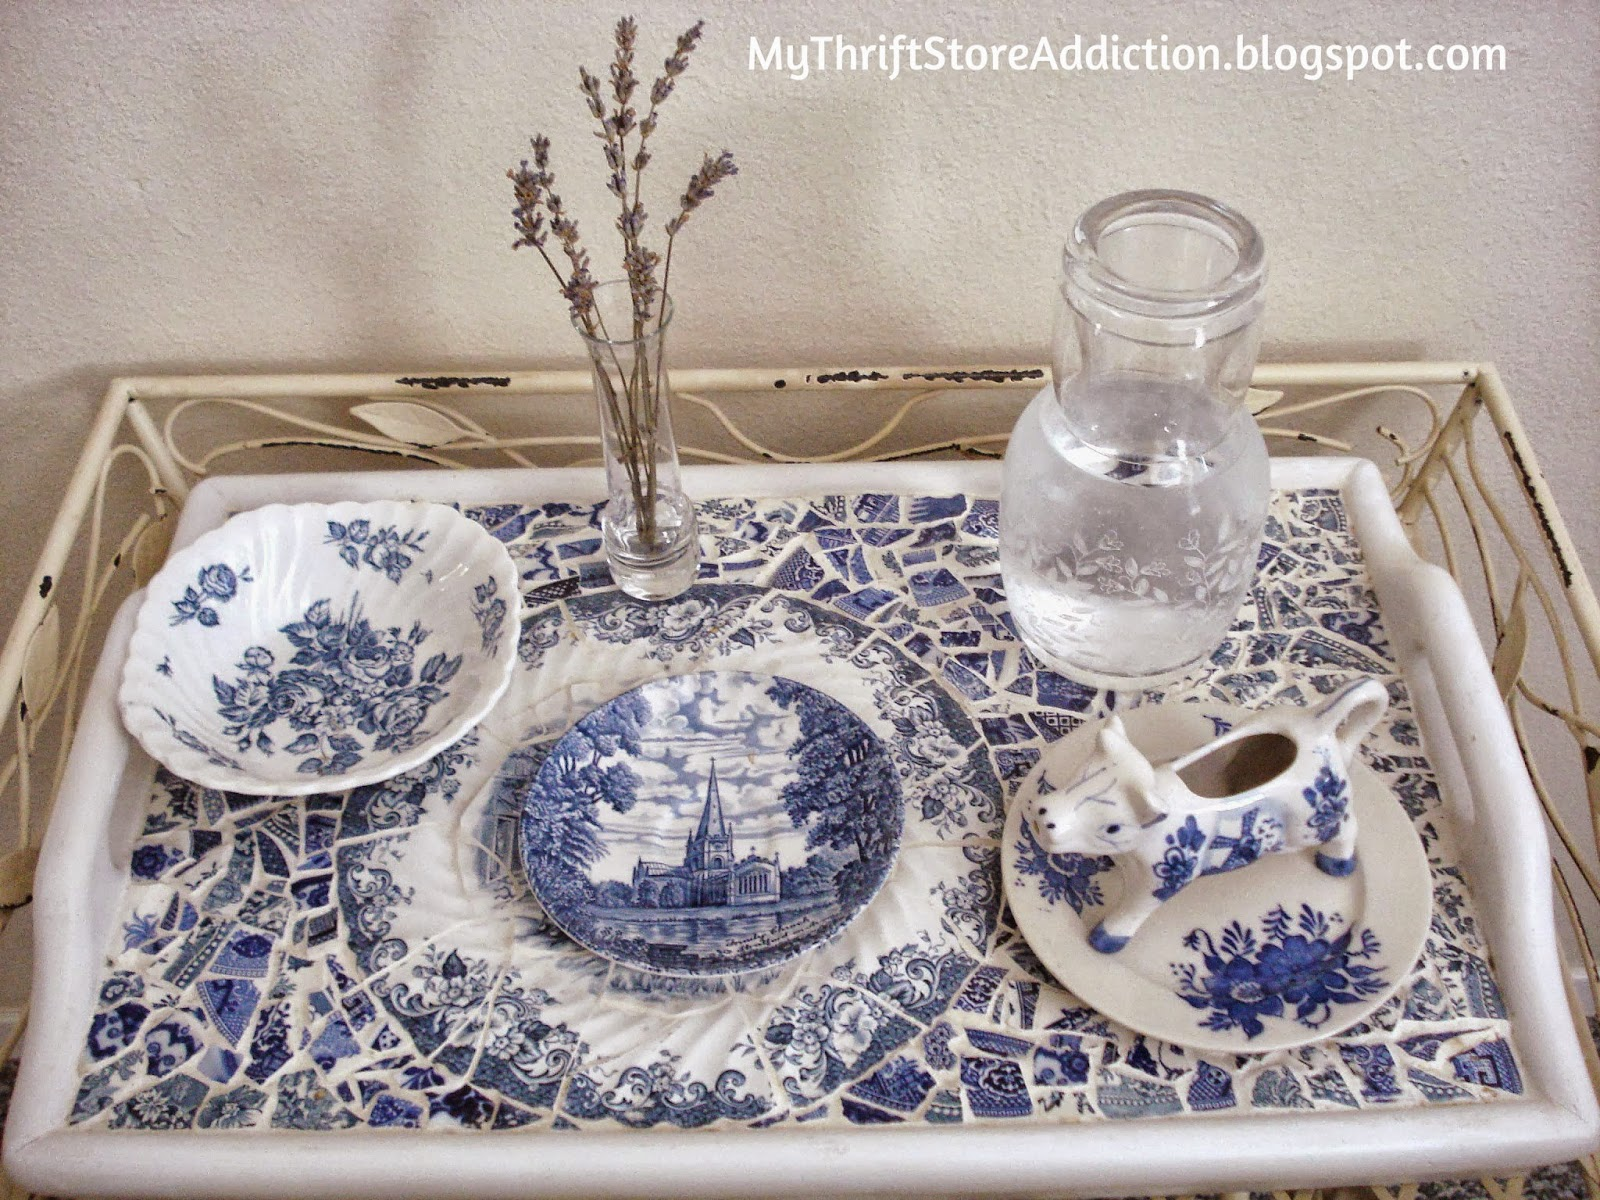 Warm and Cozy Guest Rooms  mythriftstoreaddiction.blogspot.com  Offer guests a breakfast tray complete with a water carafe